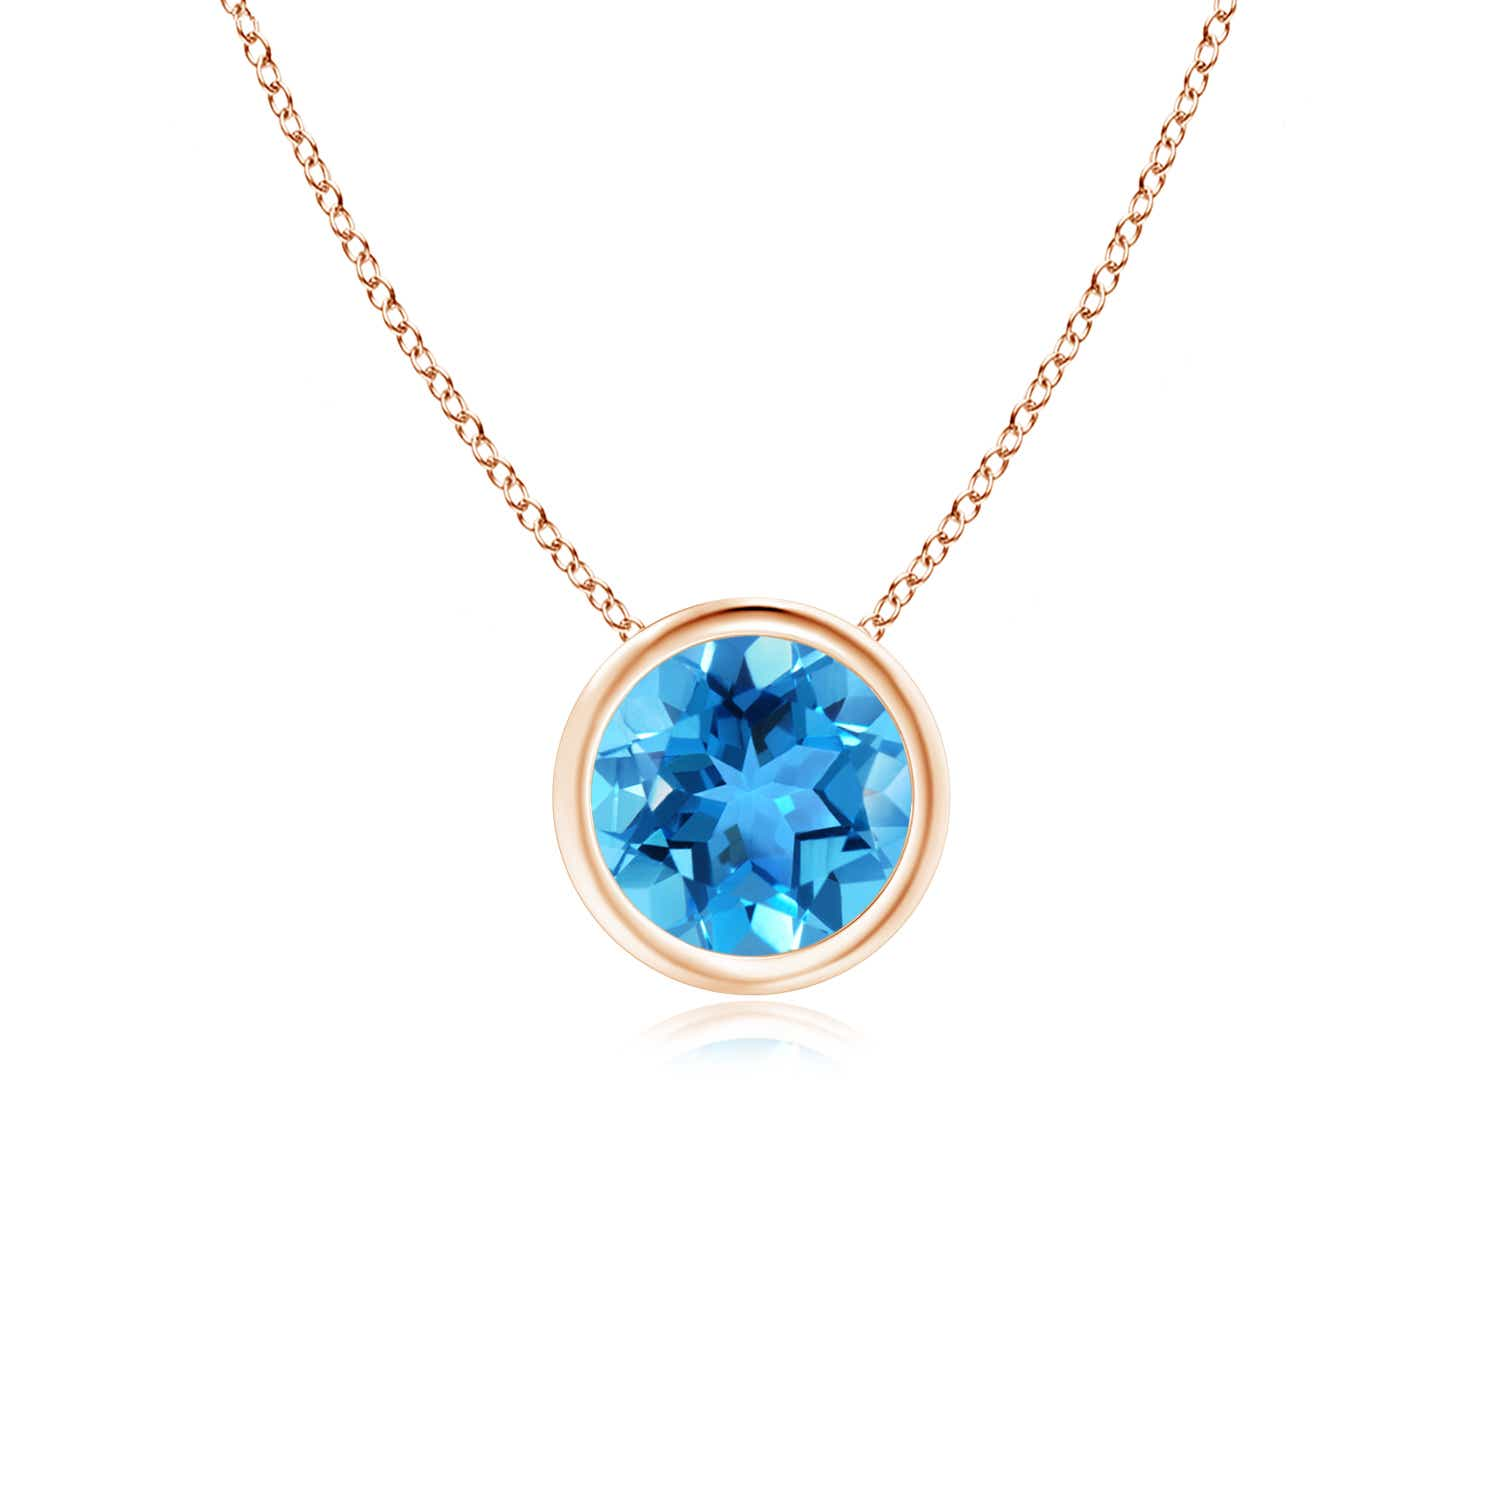 Angara Solitaire Round Swiss Blue Topaz Pendant with Diamond Bale hsZyR